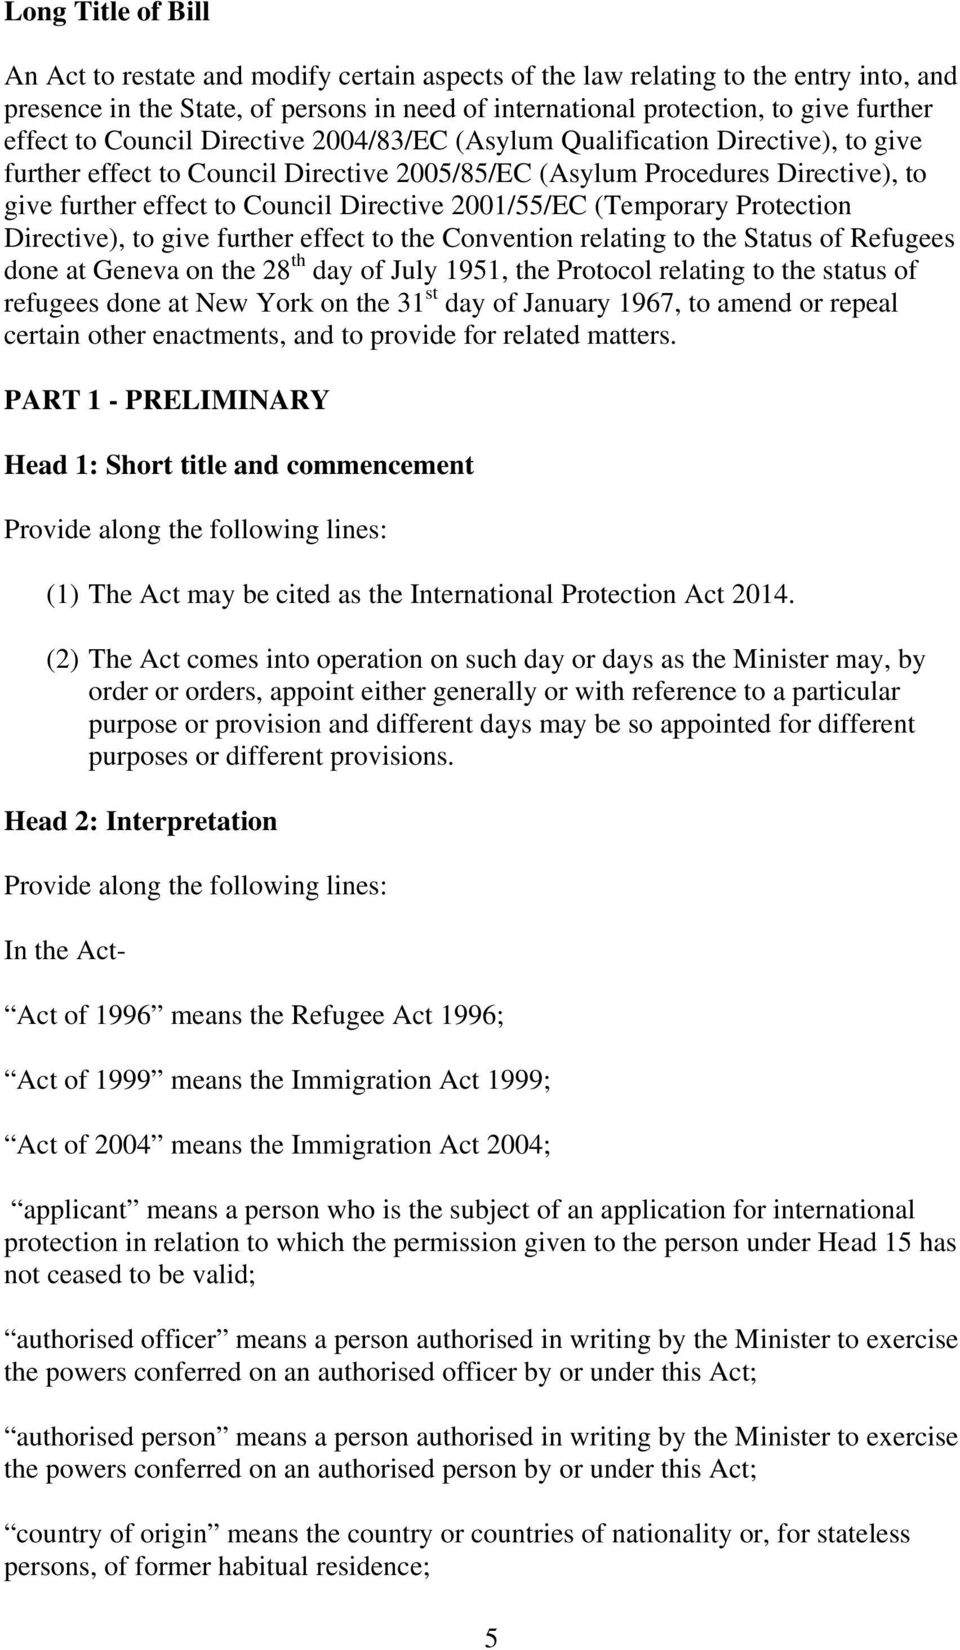 Directive 2001/55/EC (Temporary Protection Directive), to give further effect to the Convention relating to the Status of Refugees done at Geneva on the 28 th day of July 1951, the Protocol relating